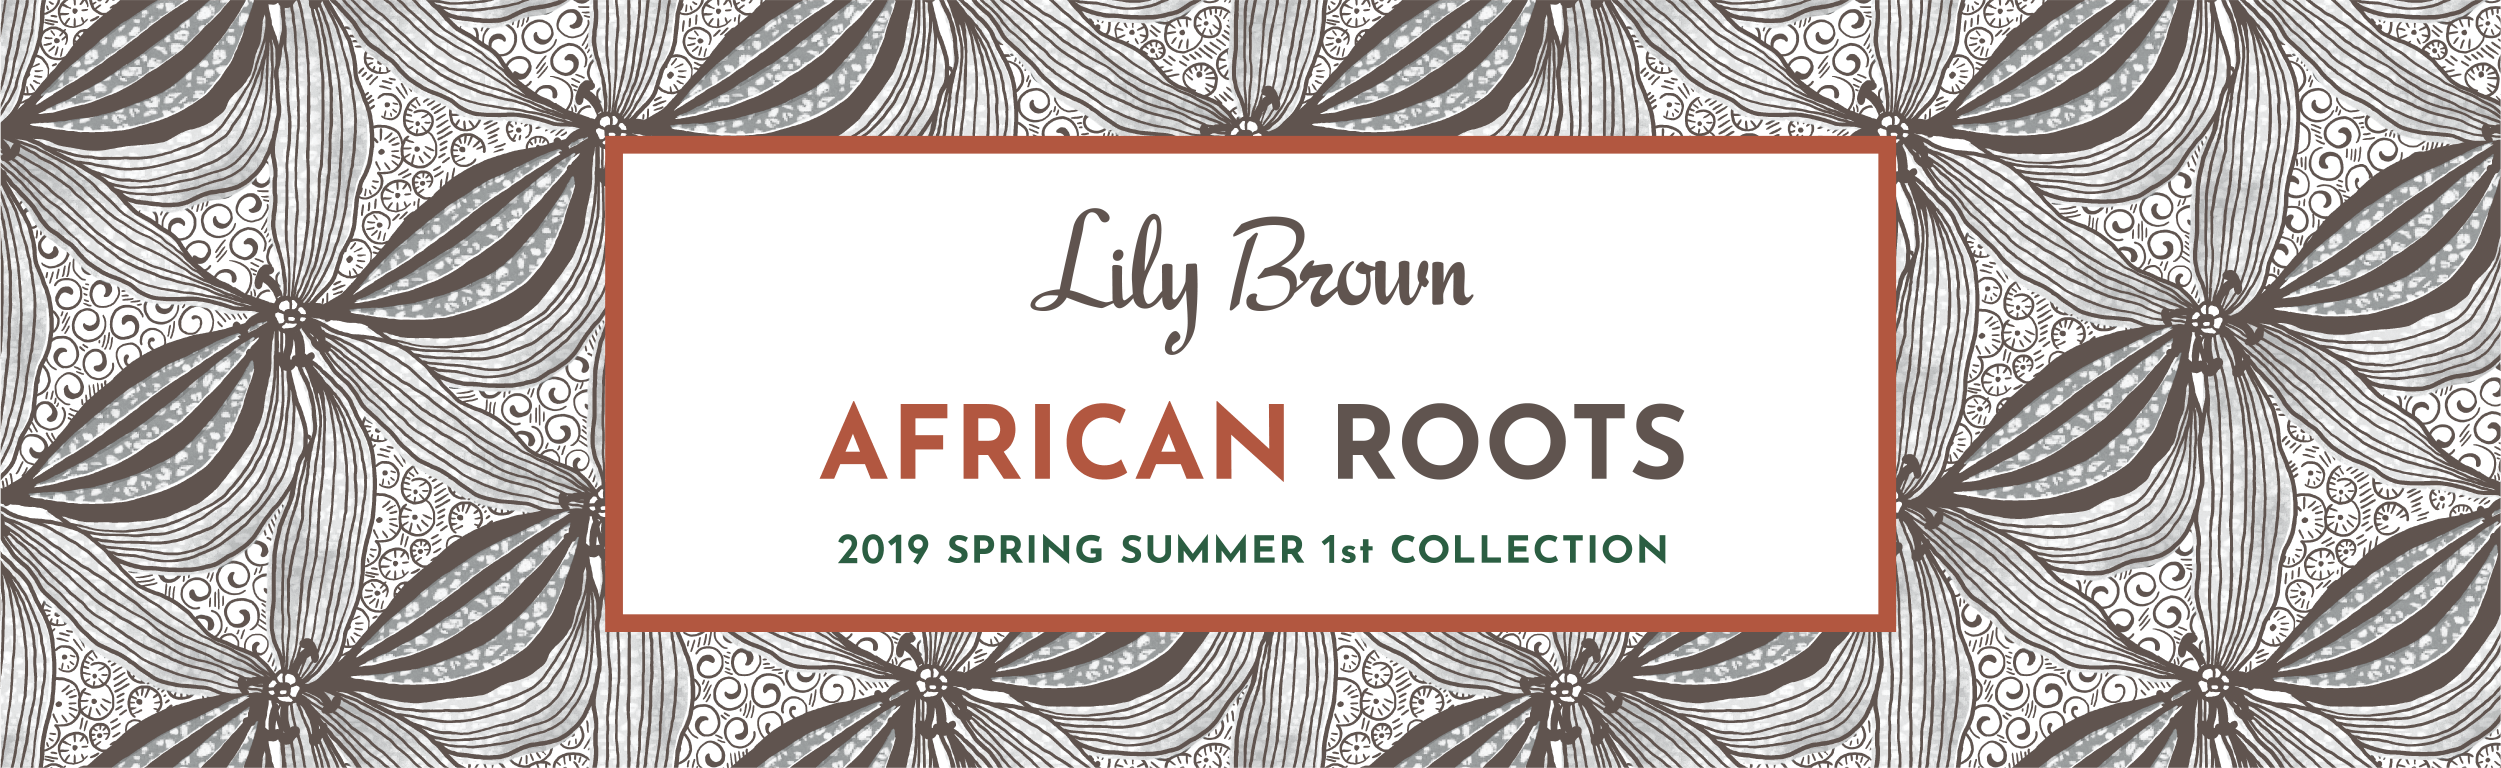 Lily Brown AFRICAN ROOTS 2019 SPRING SUMMER 1st COLLECTION